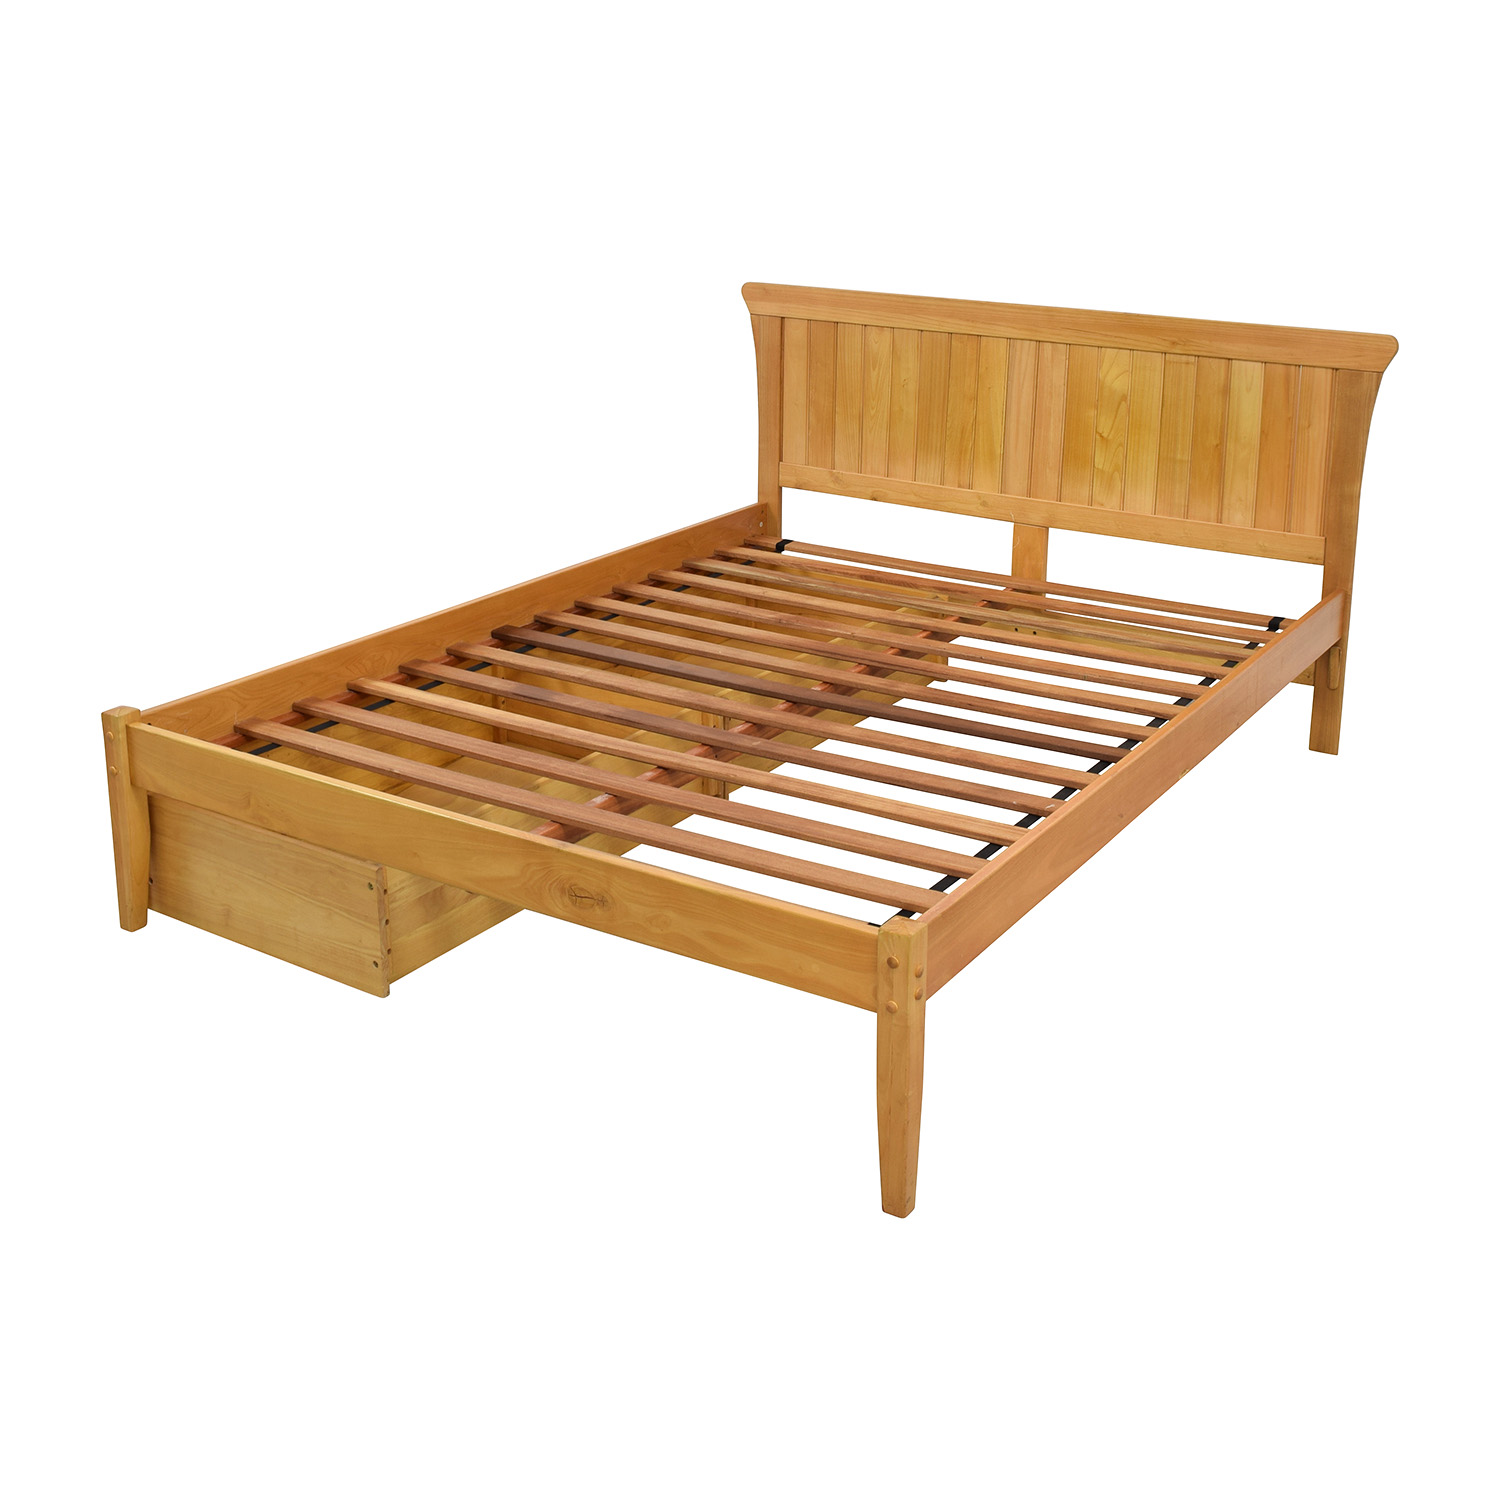 67 Off Solid Wood Bedframe With Storage Beds